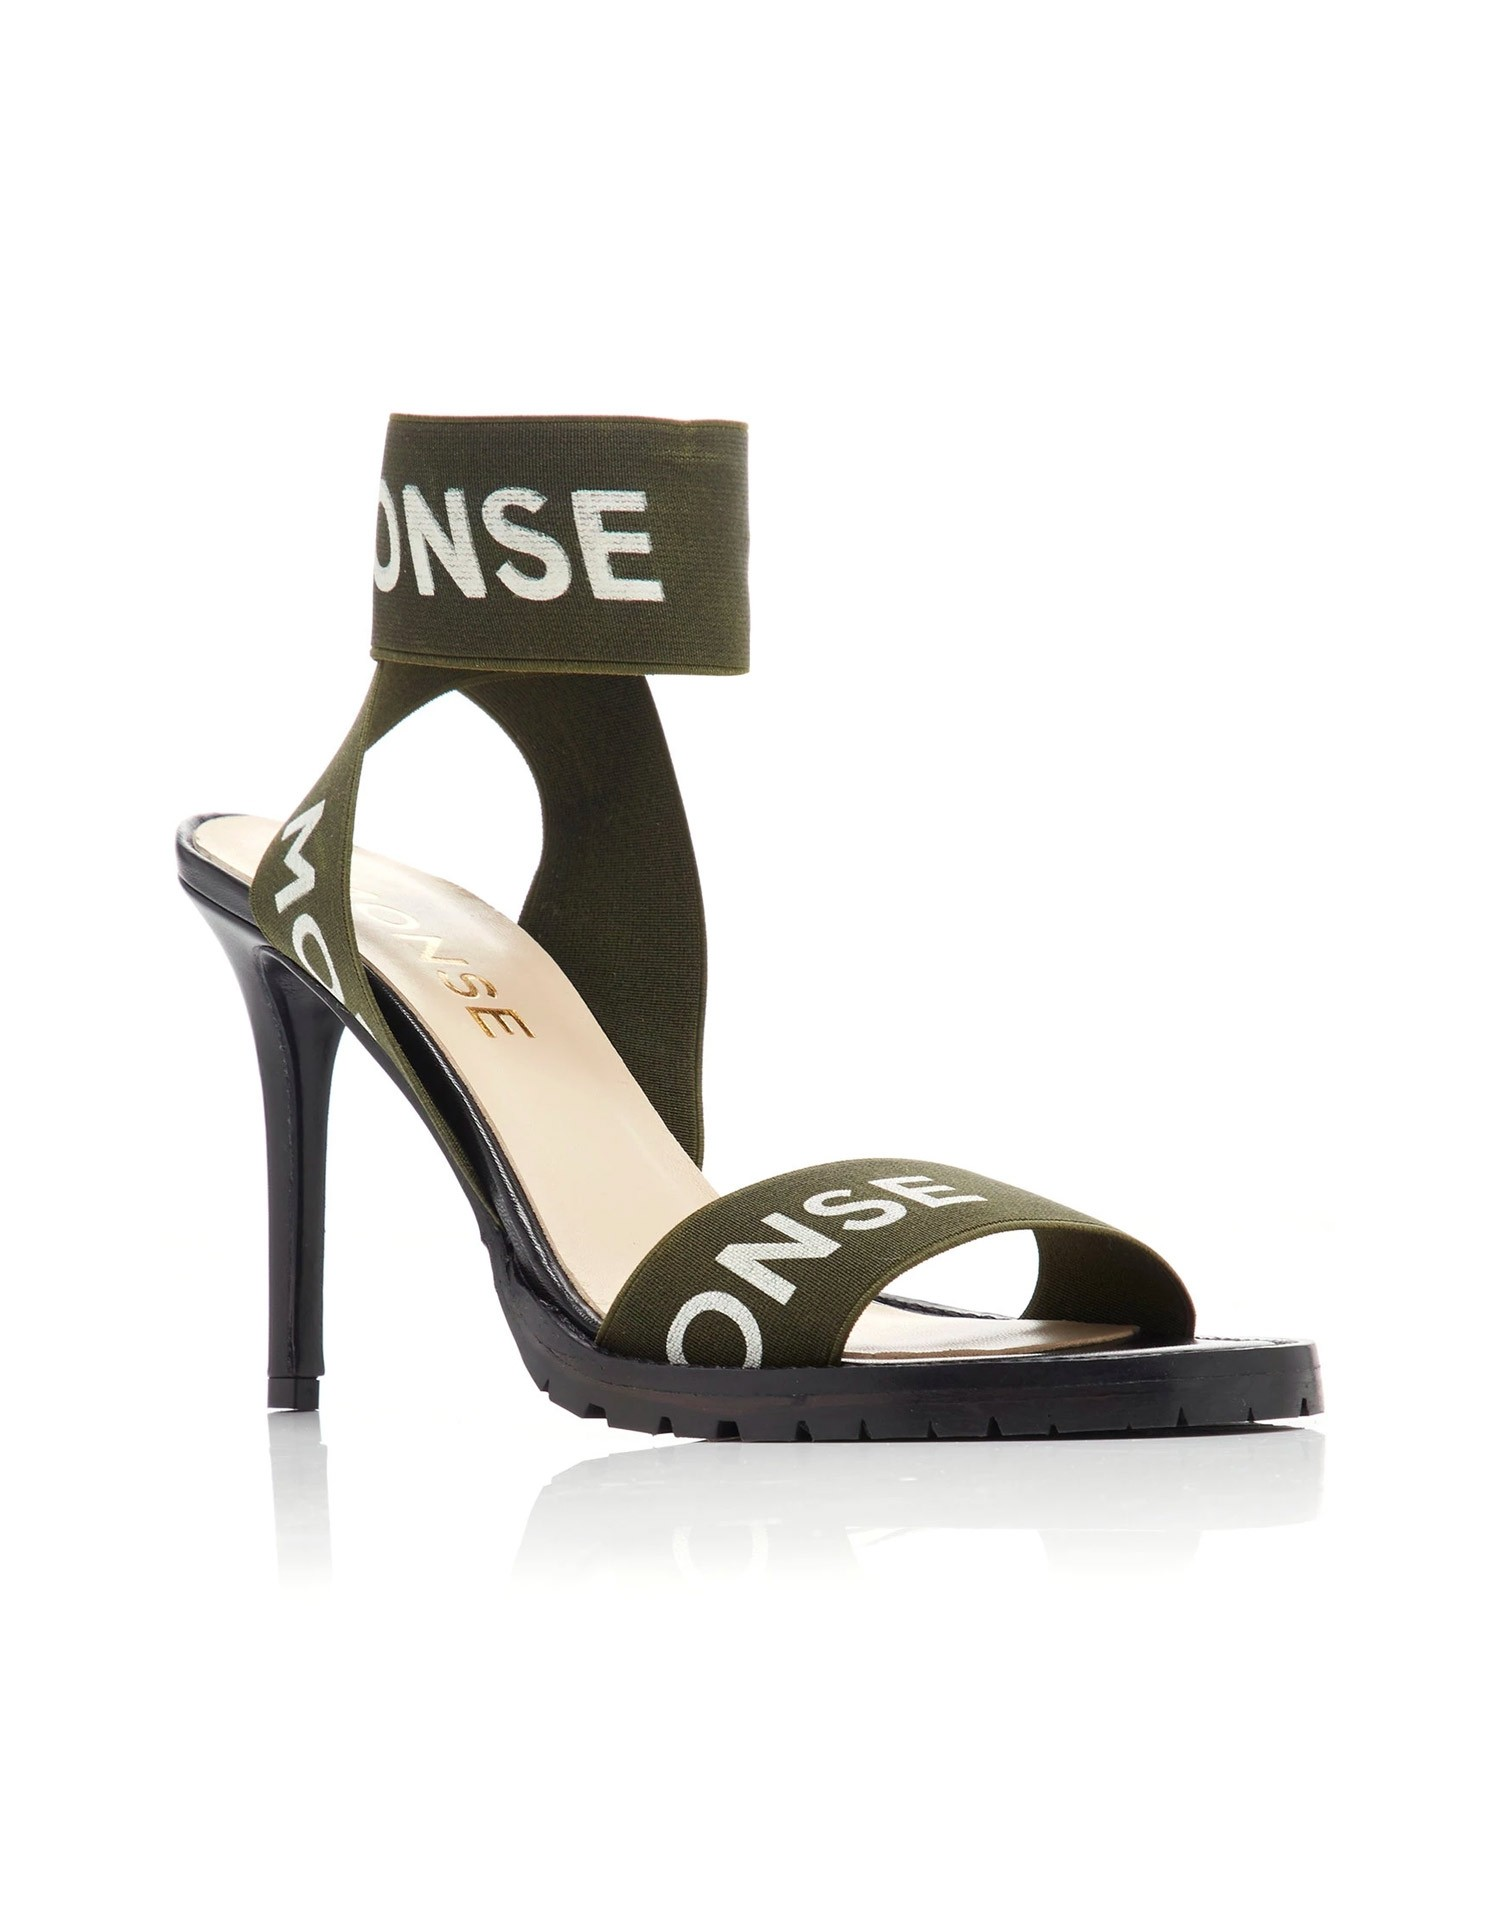 MONSE Stretch Strap Heel Olive